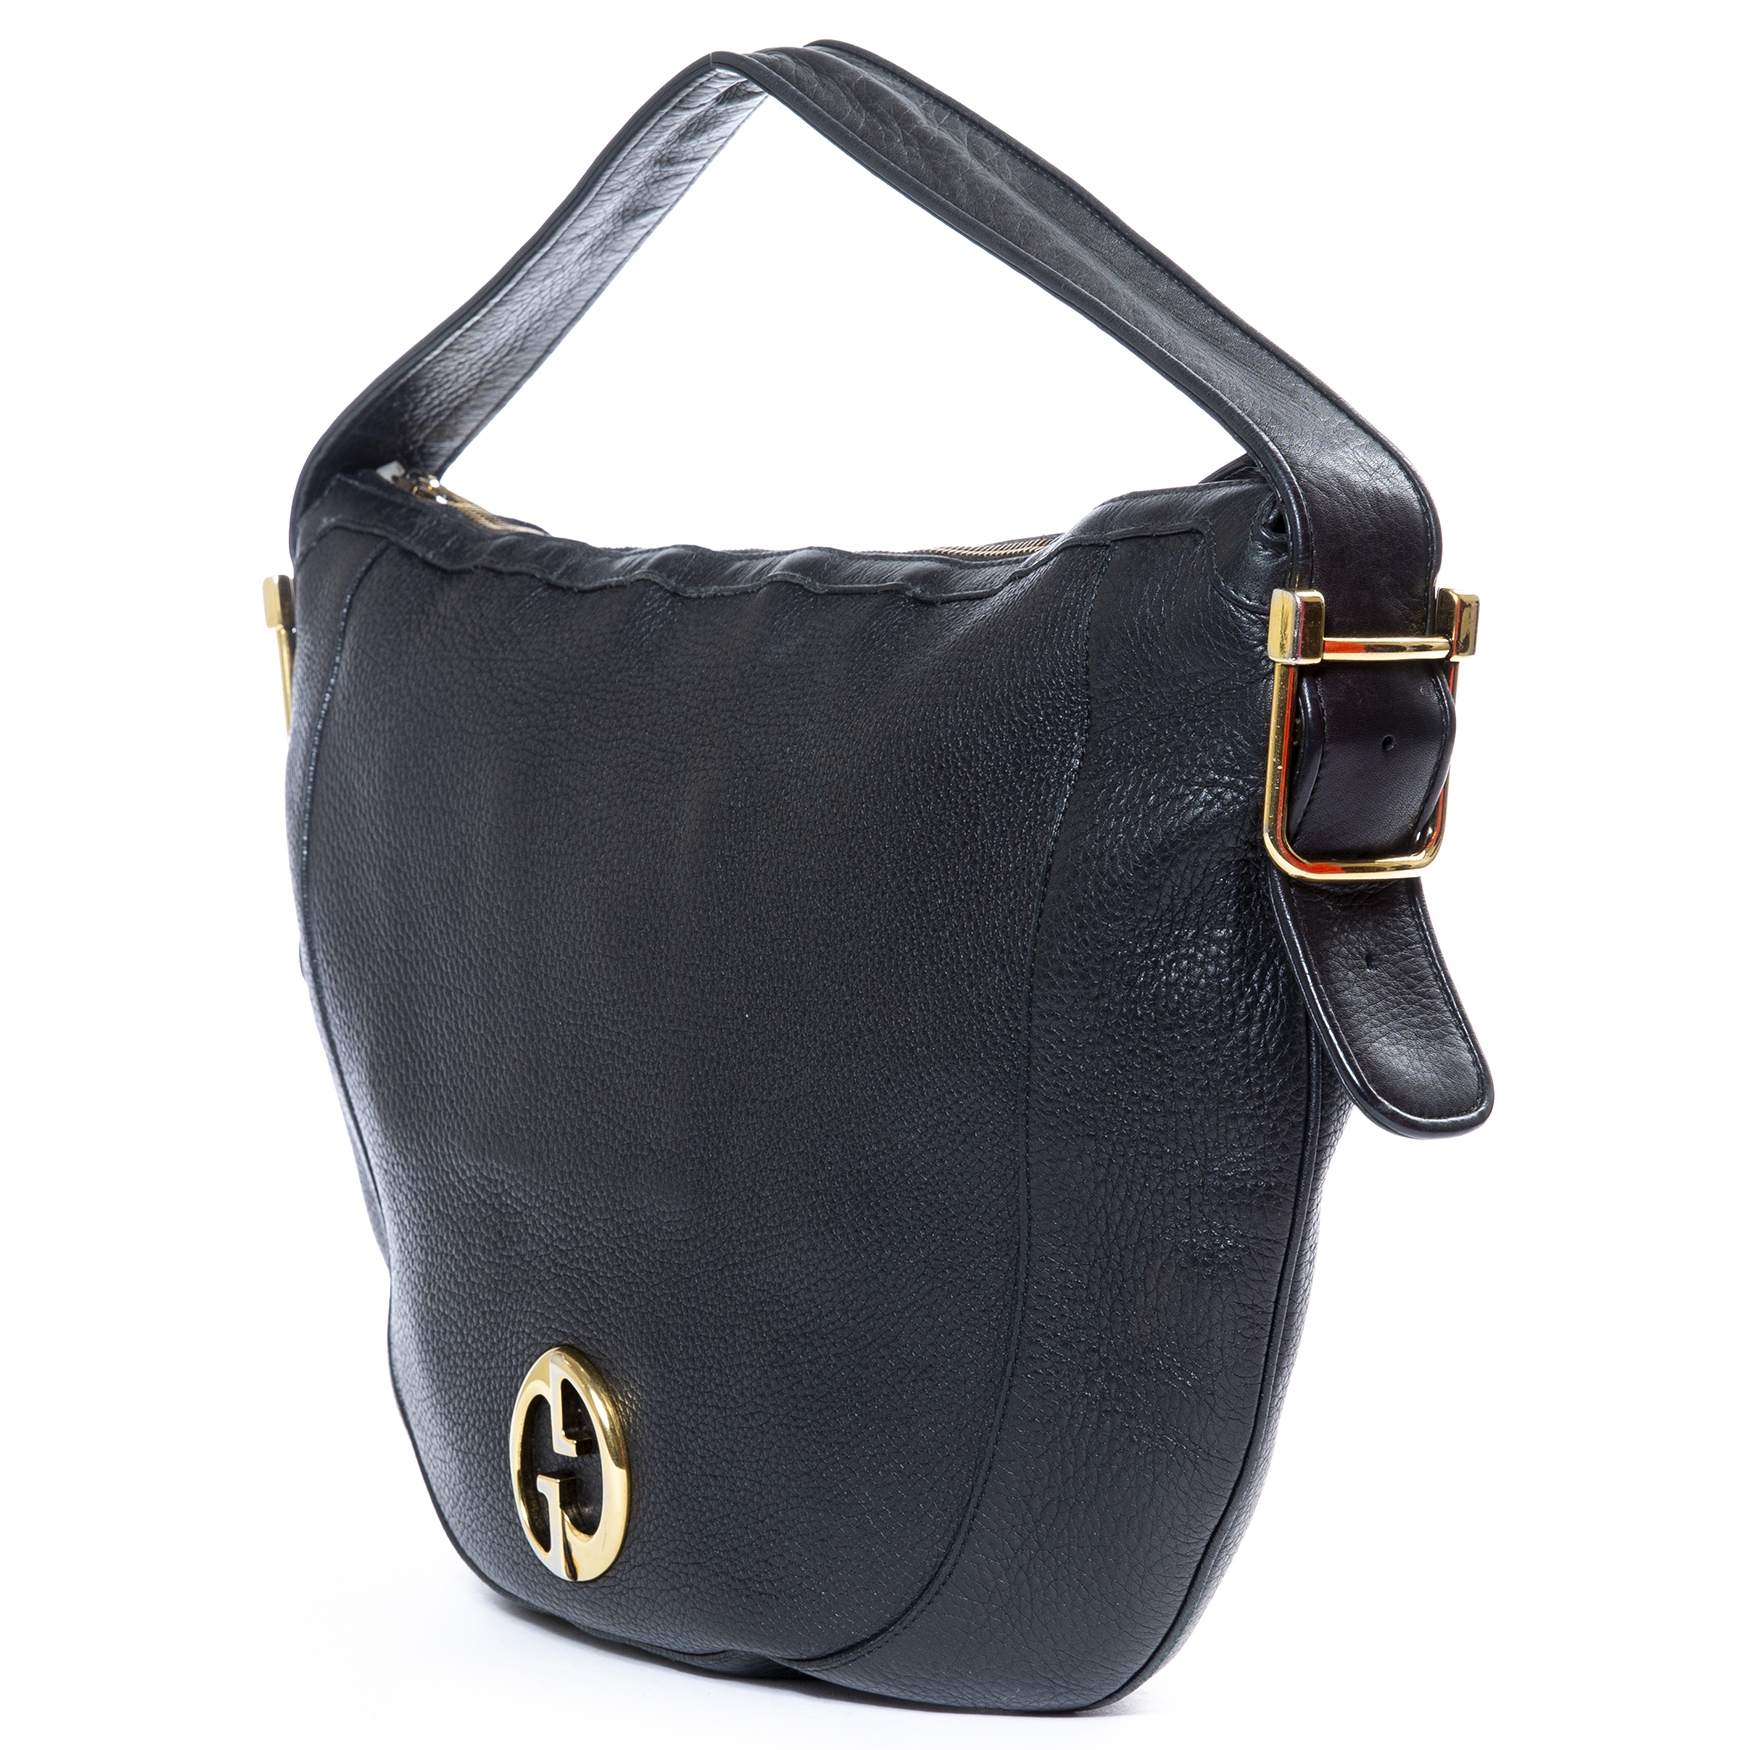 68ed33b4df1168 ... gucci black leather shoulder bag now for sale at labellov vintage  fashion webshop belgium